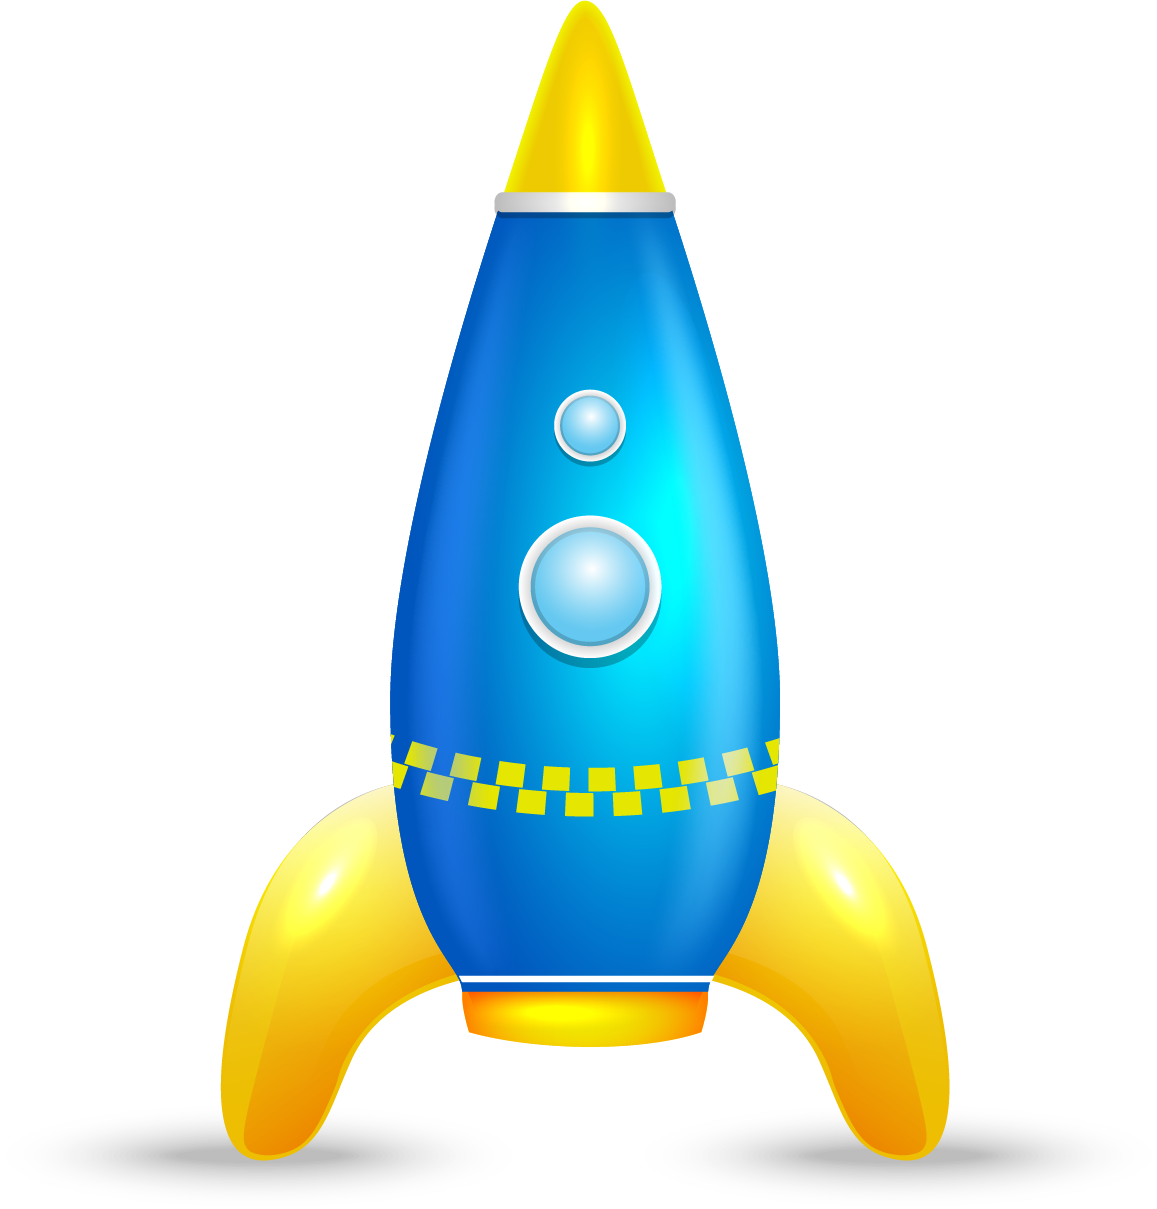 Toy clip art cartoon. Clipart rocket yellow rocket